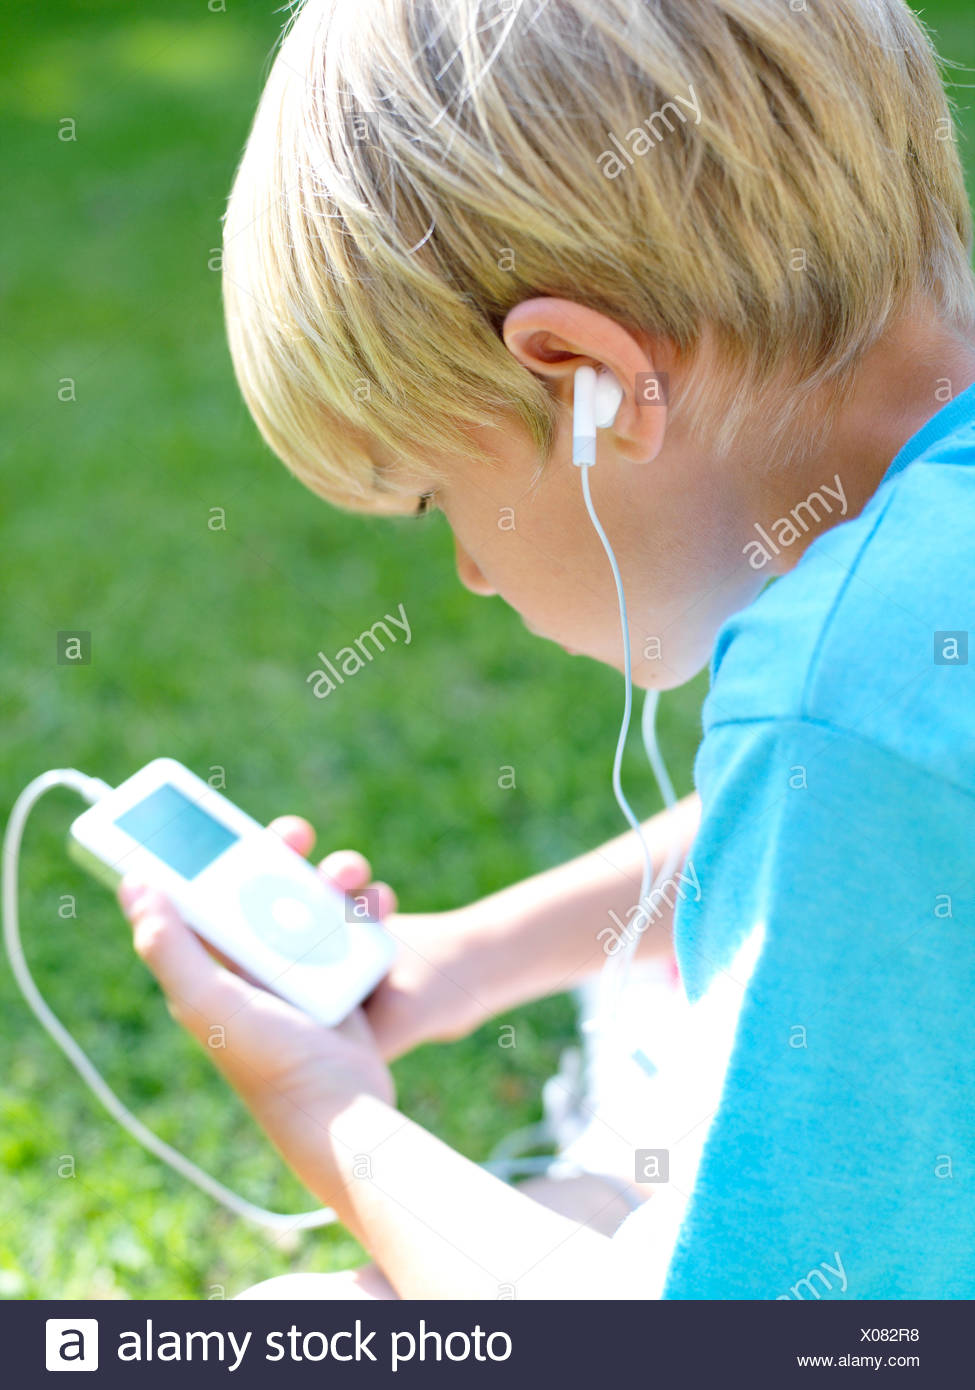 Boy (6-8) with MP3 player, rear view - Stock Image